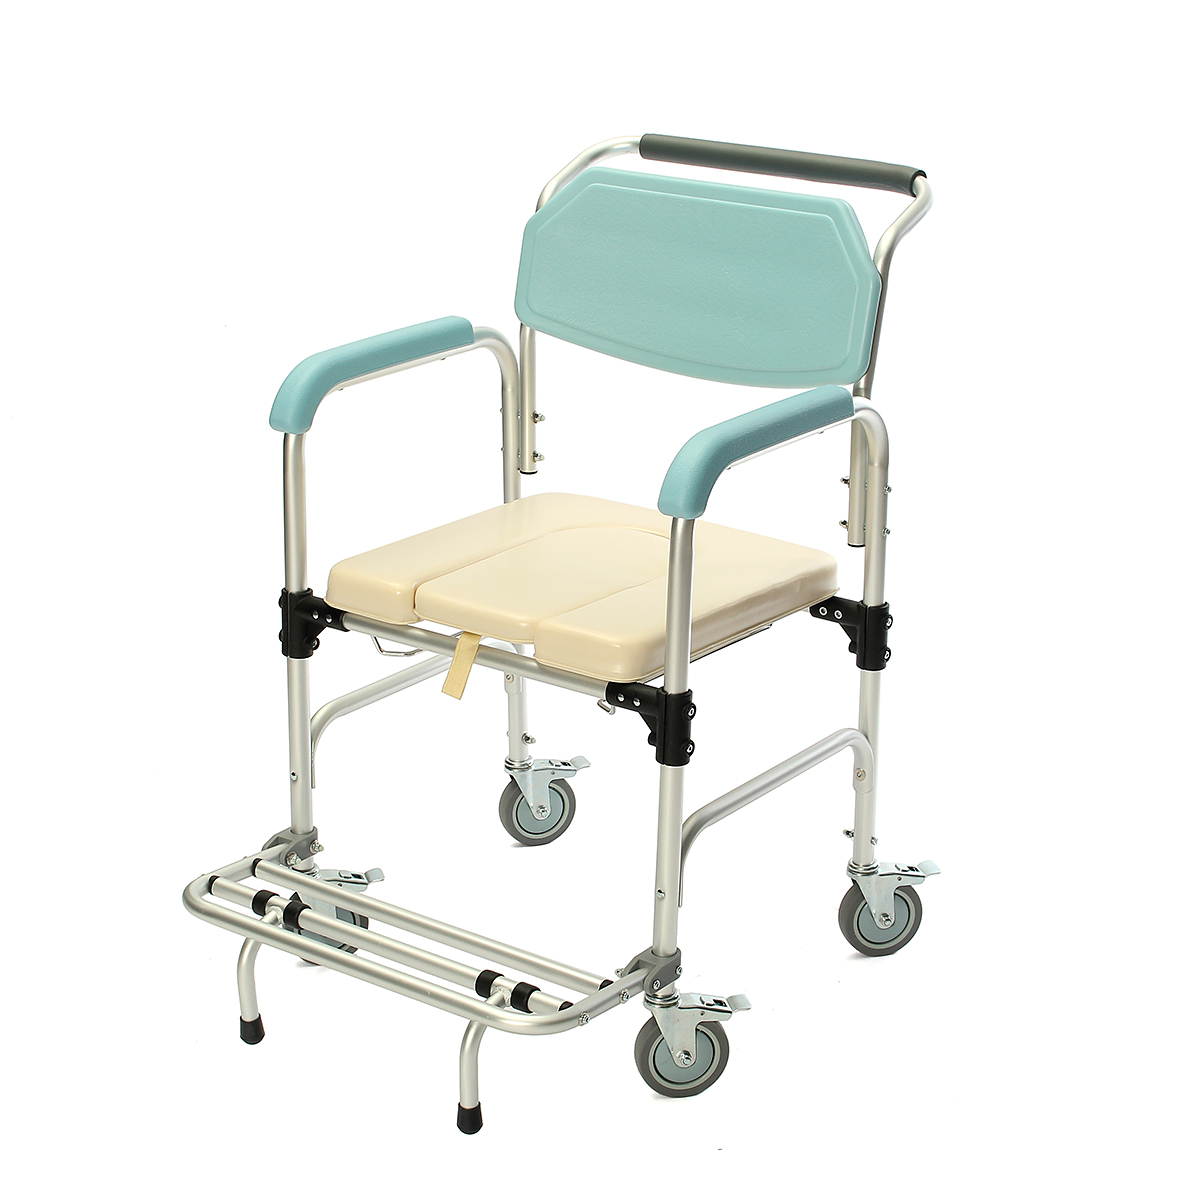 Bedside Commode Chair Us 298 09 3 In 1 Commode Wheelchair Elder Folding Chair Bedside Toilet Shower Seat Bathroom Rolling Chair Aluminum Alloy Waterproof In Bathroom